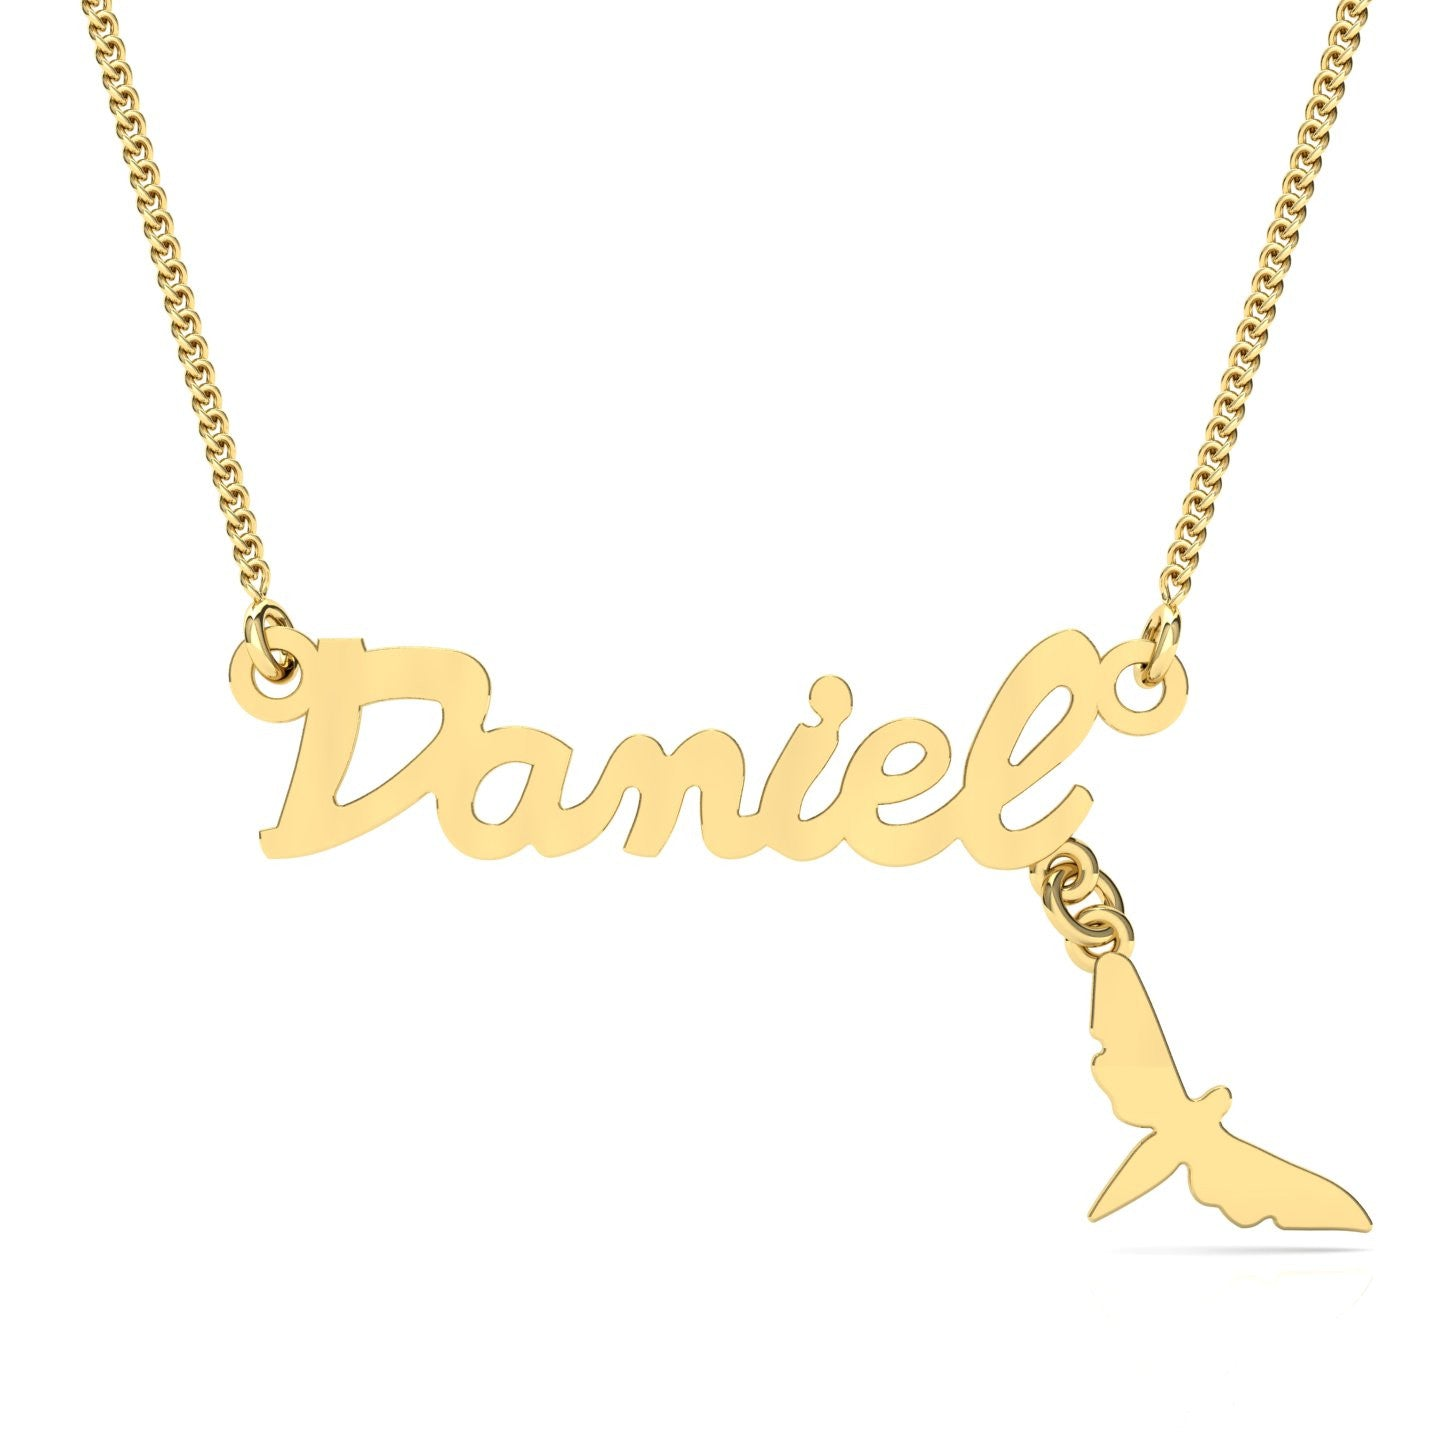 gold initial tag onegold one shop with name j br jewellery tags necklace necklaces collections yellow tiny